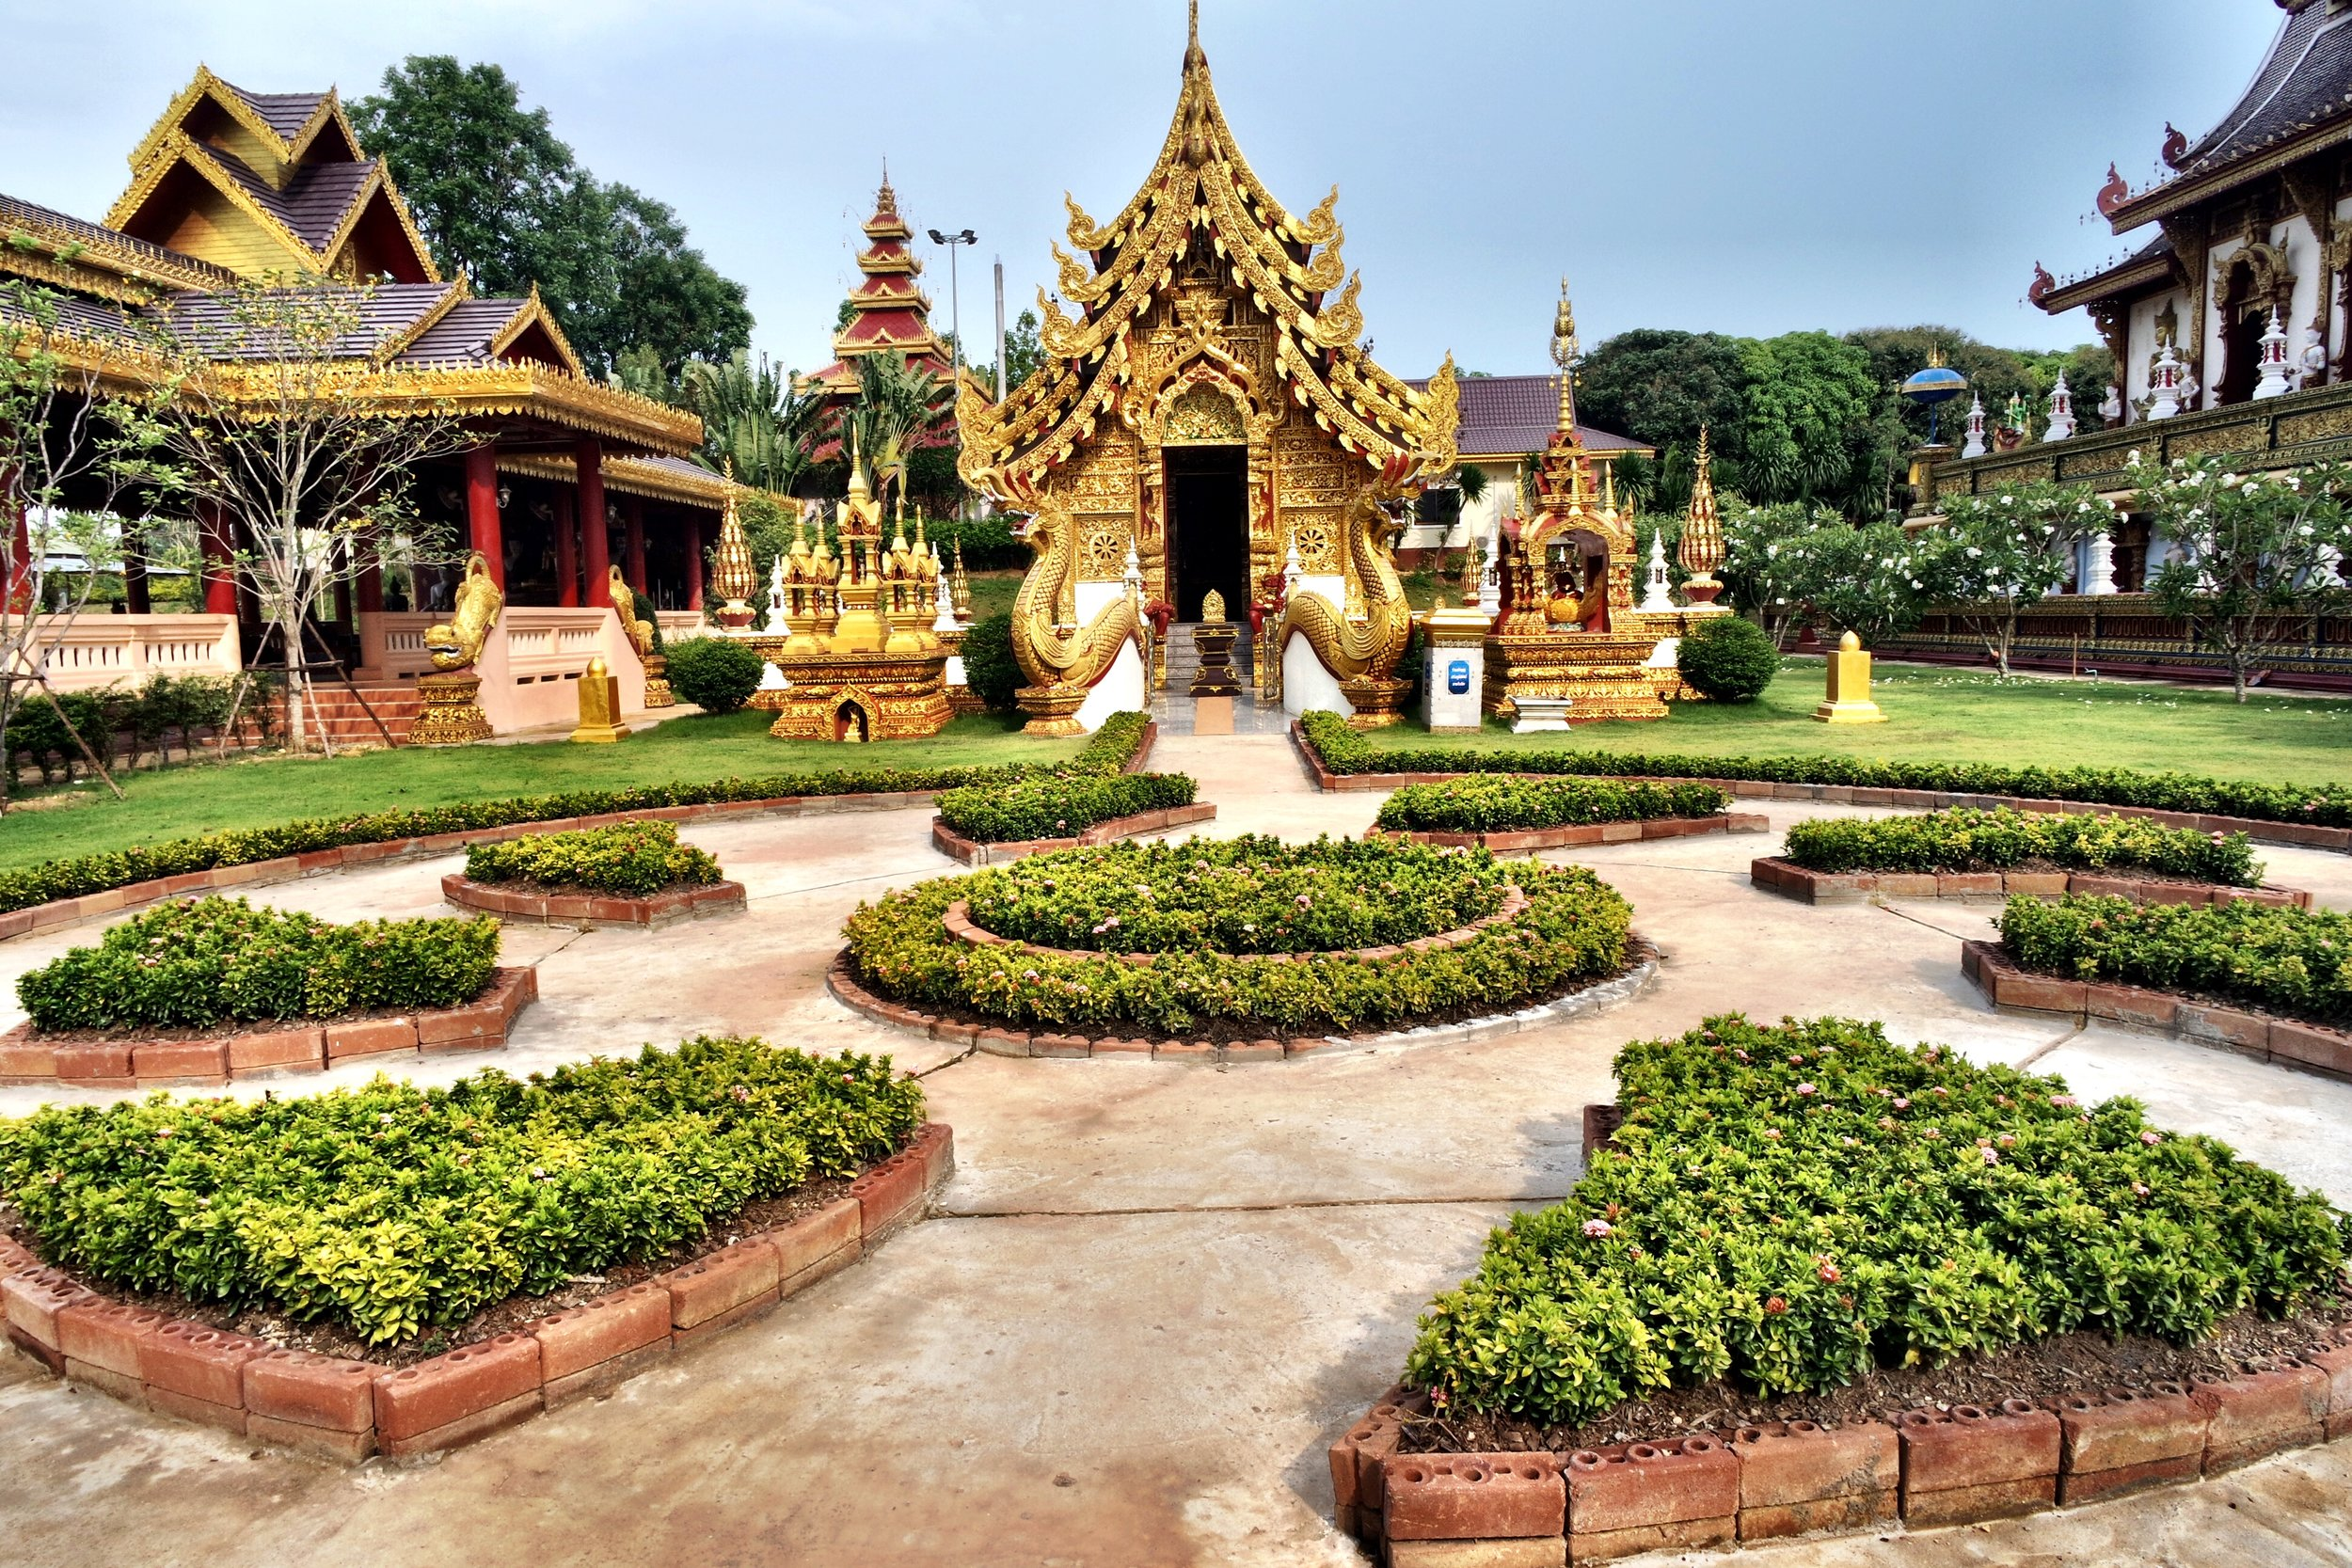 The front area of Wat Sang Kaew is gorgeously landscaped